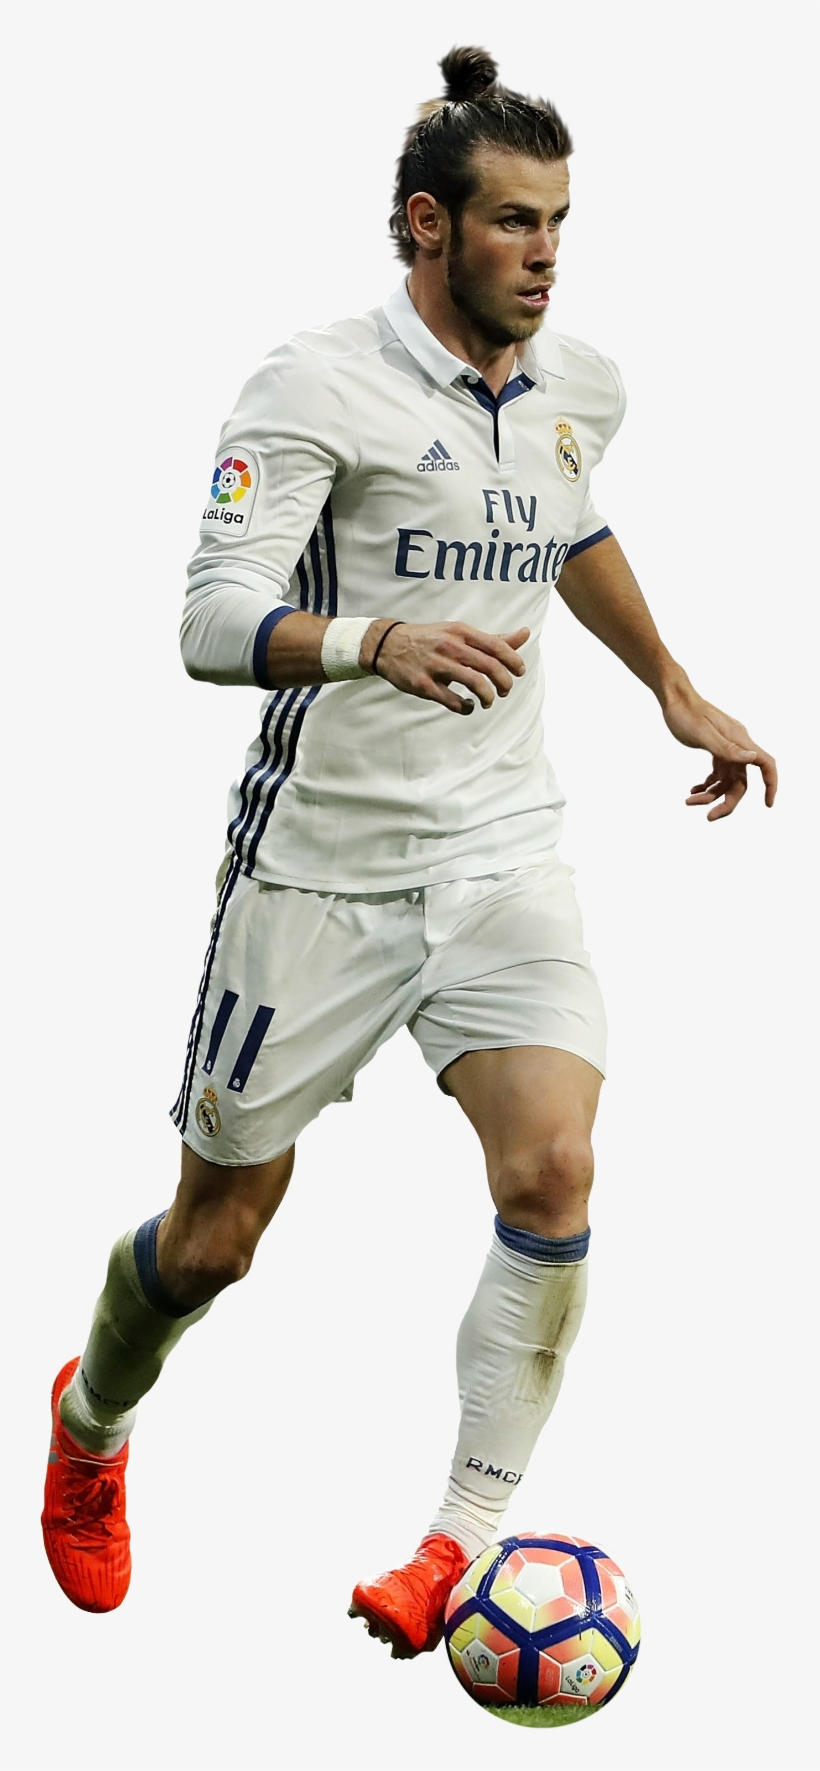 Gareth Bale Football Render Bale Real Madrid Png Free